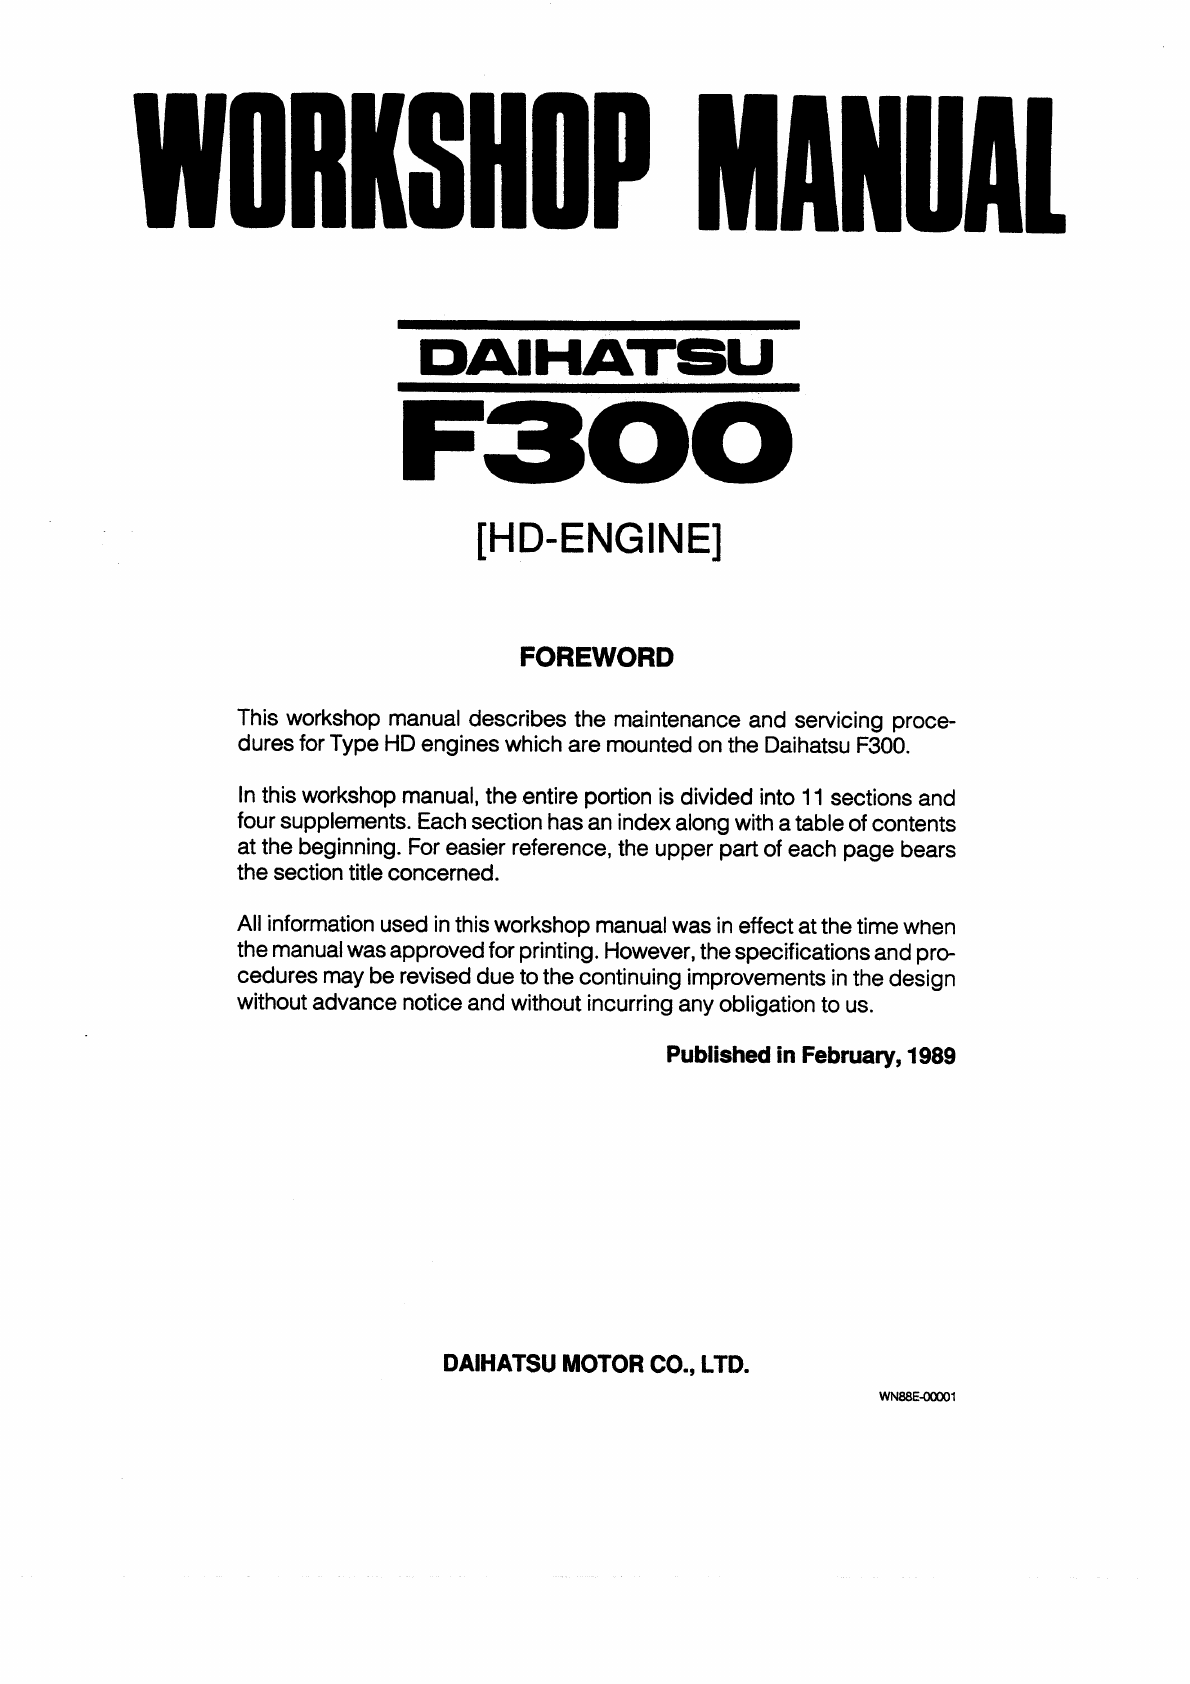 Daihatsu Rocky Wiring Diagram Diagrams Delta Truck 1989 Workshop Manual Pdf Rh Manuals Co Headlight Hijet